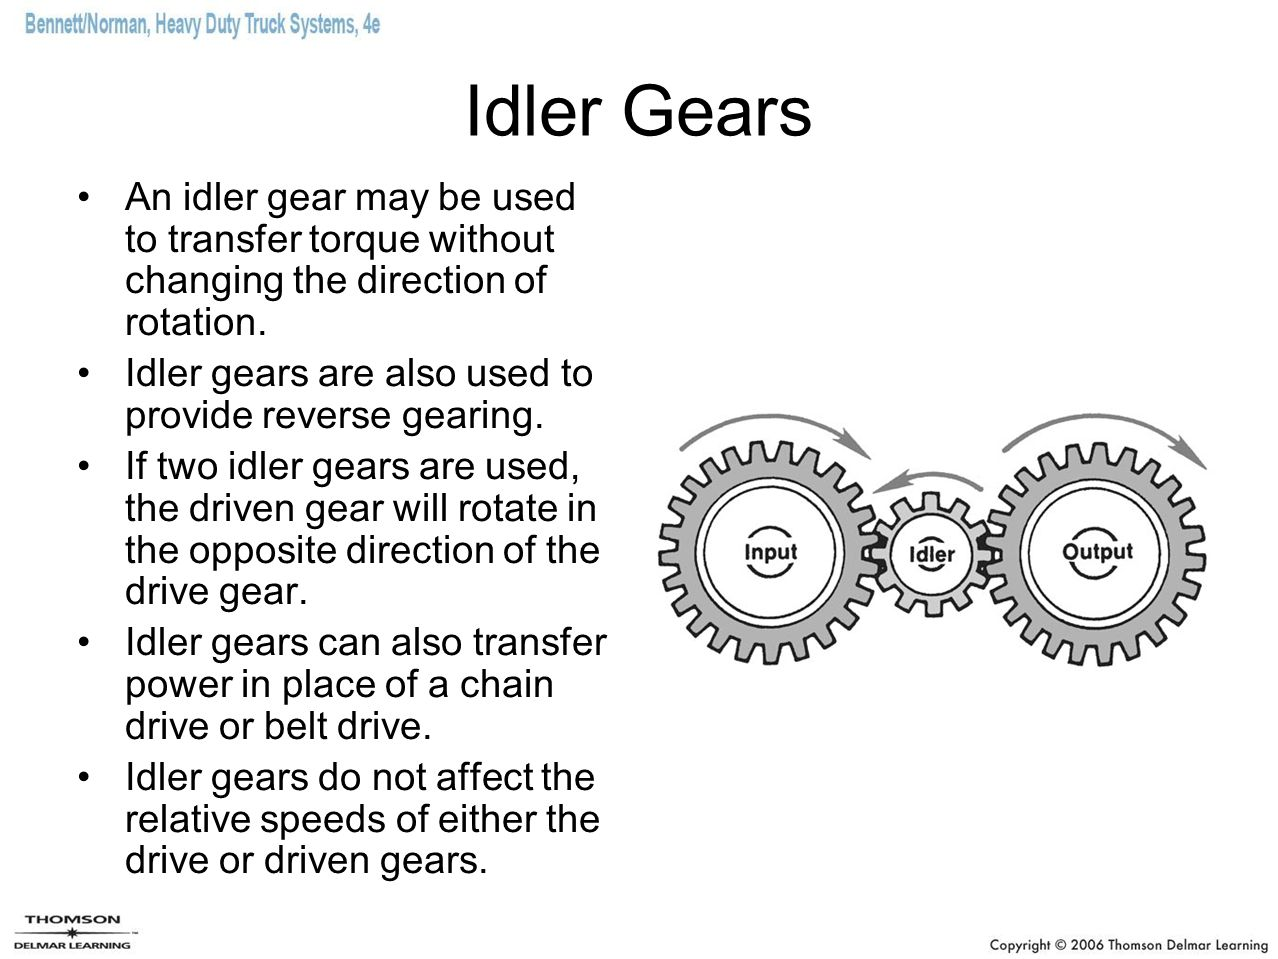 Idler Gears An idler gear may be used to transfer torque without changing the direction of rotation.